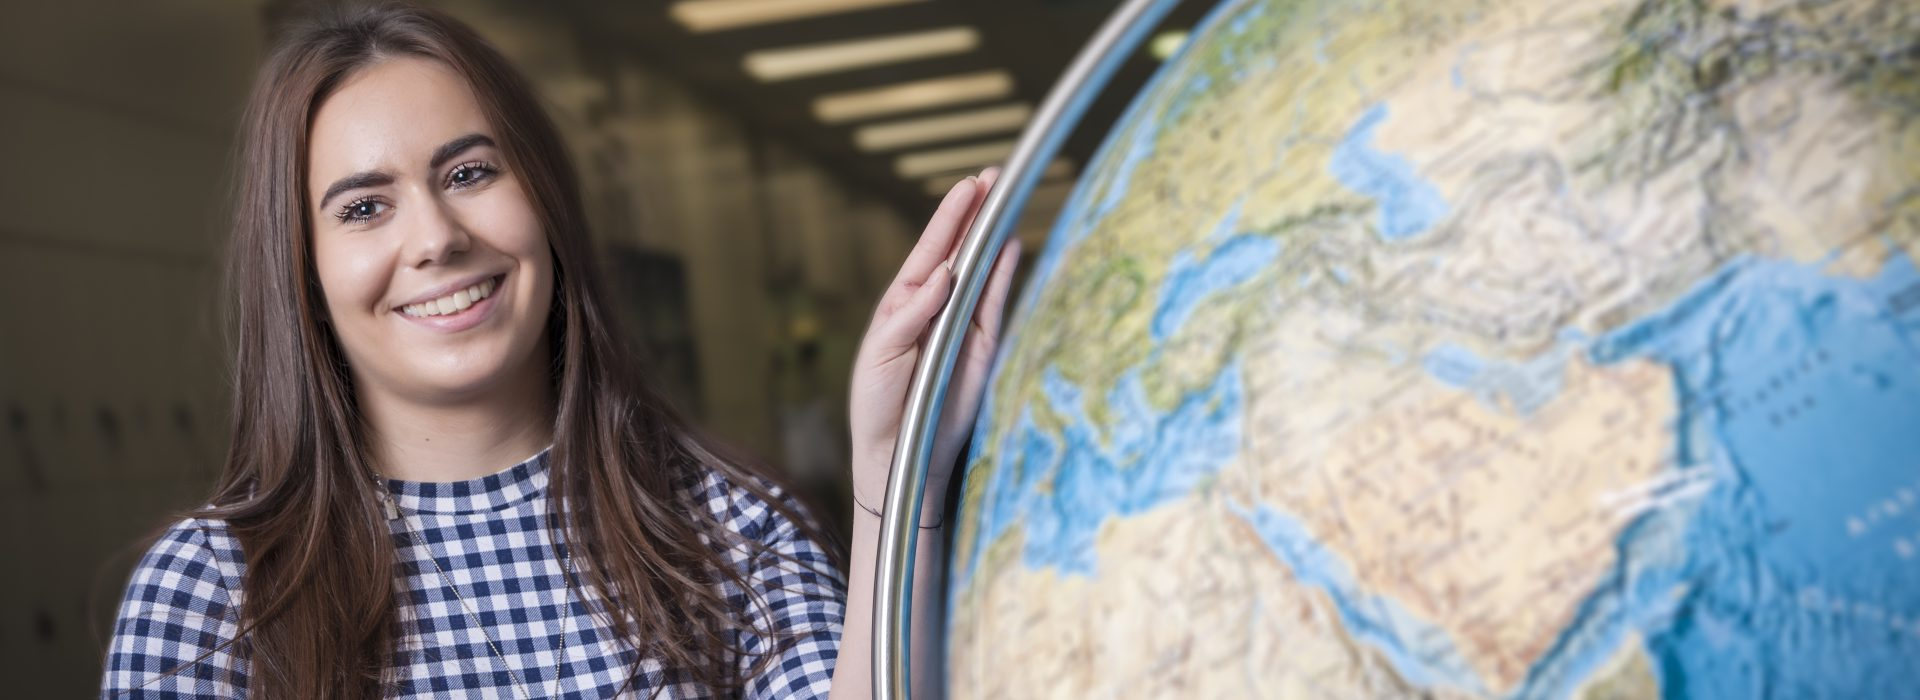 University of Liverpool Geography Course student next to a globe